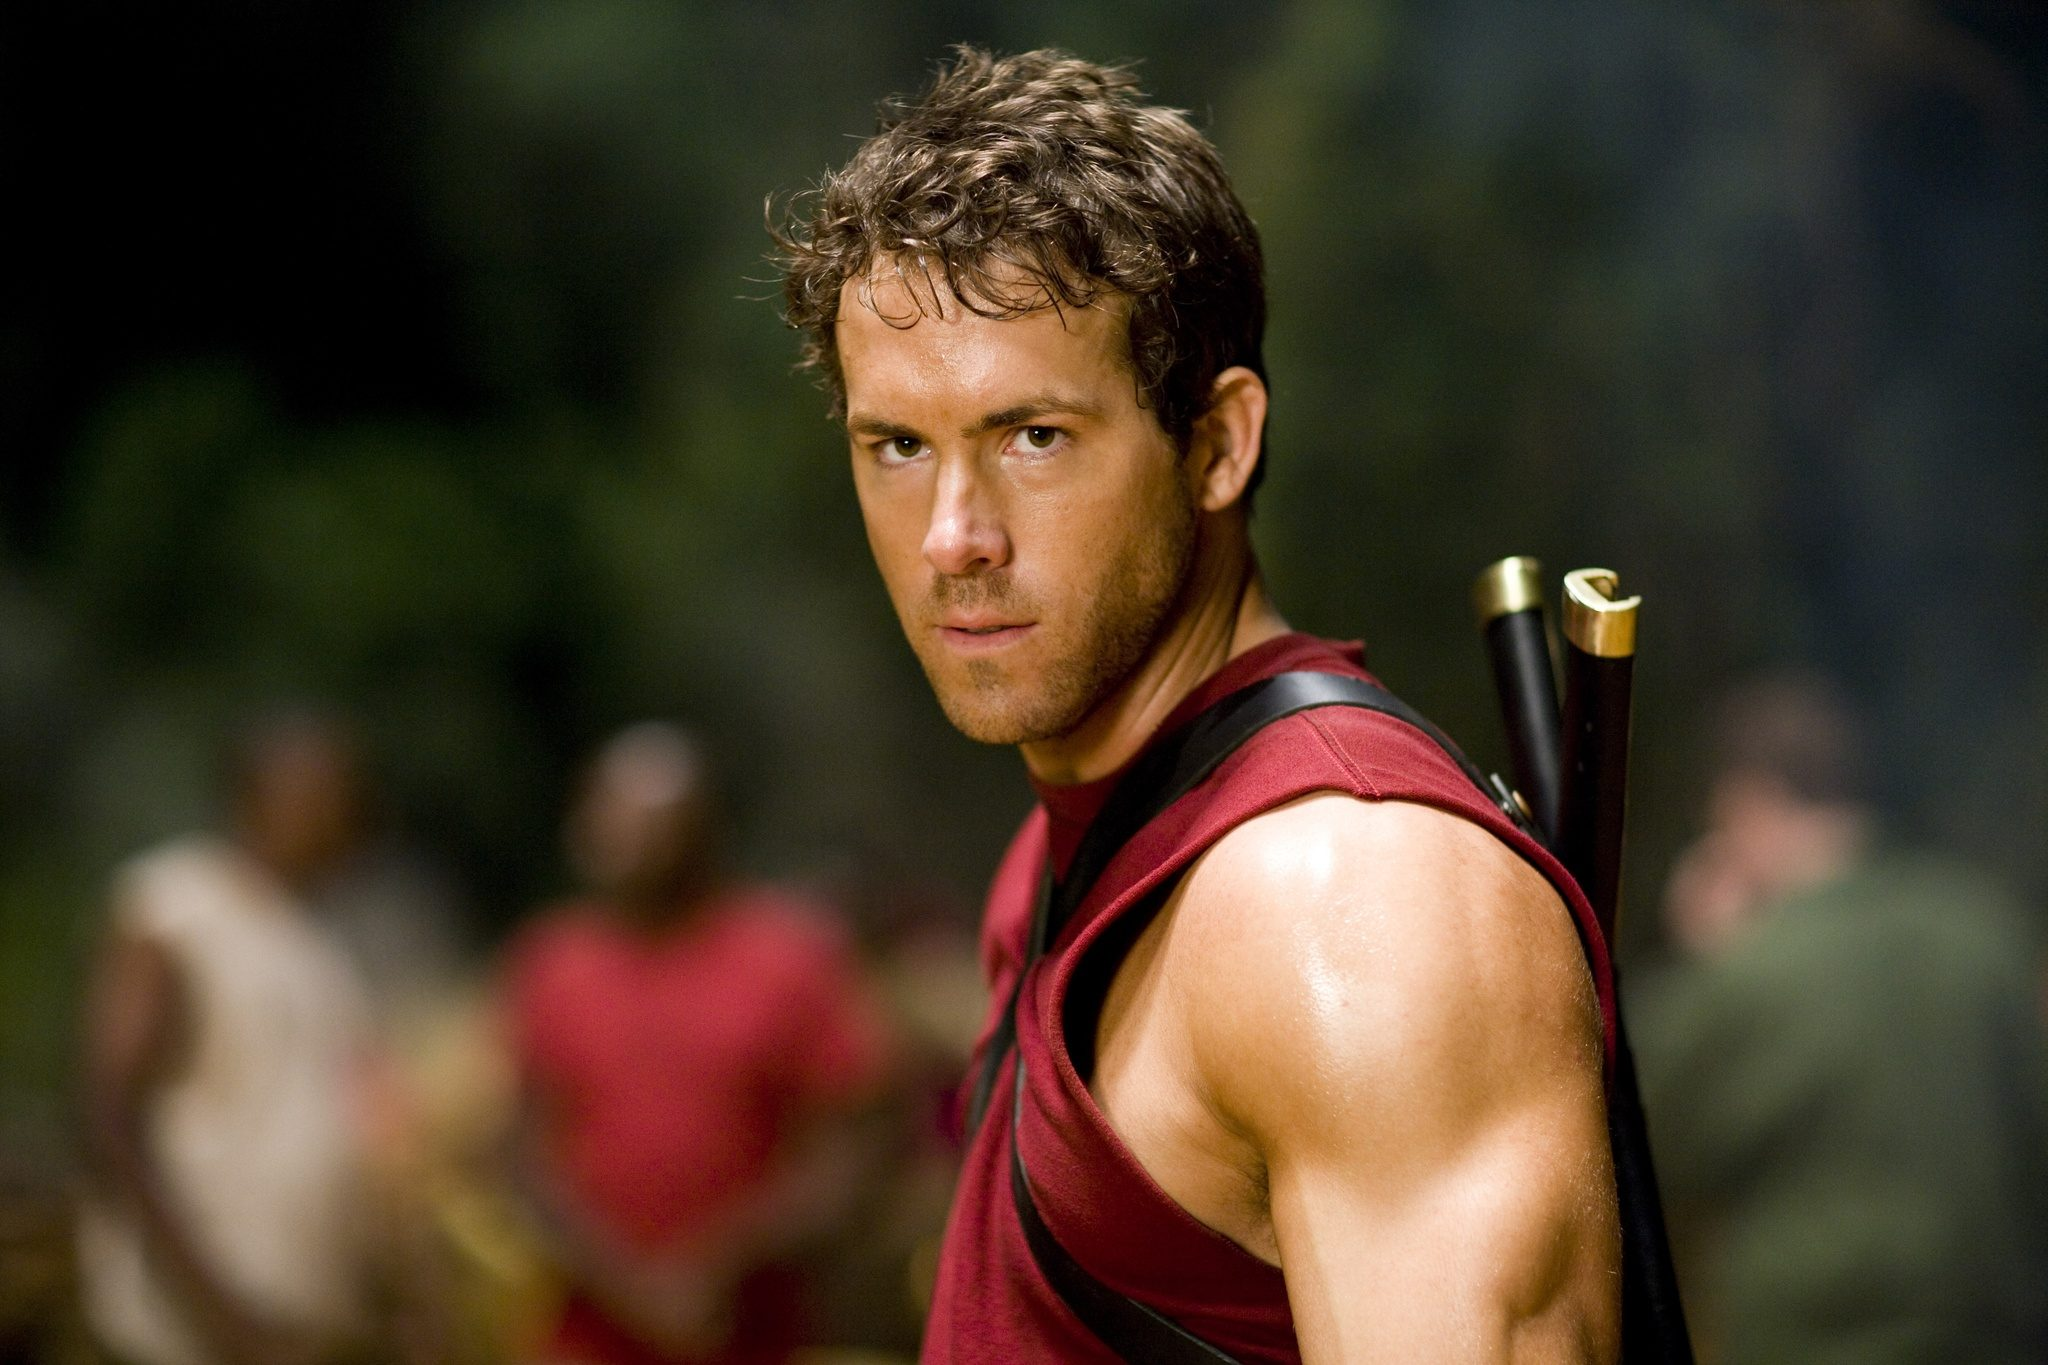 1399-deadpool-9-things-that-you-need-to-know-about-the-movie